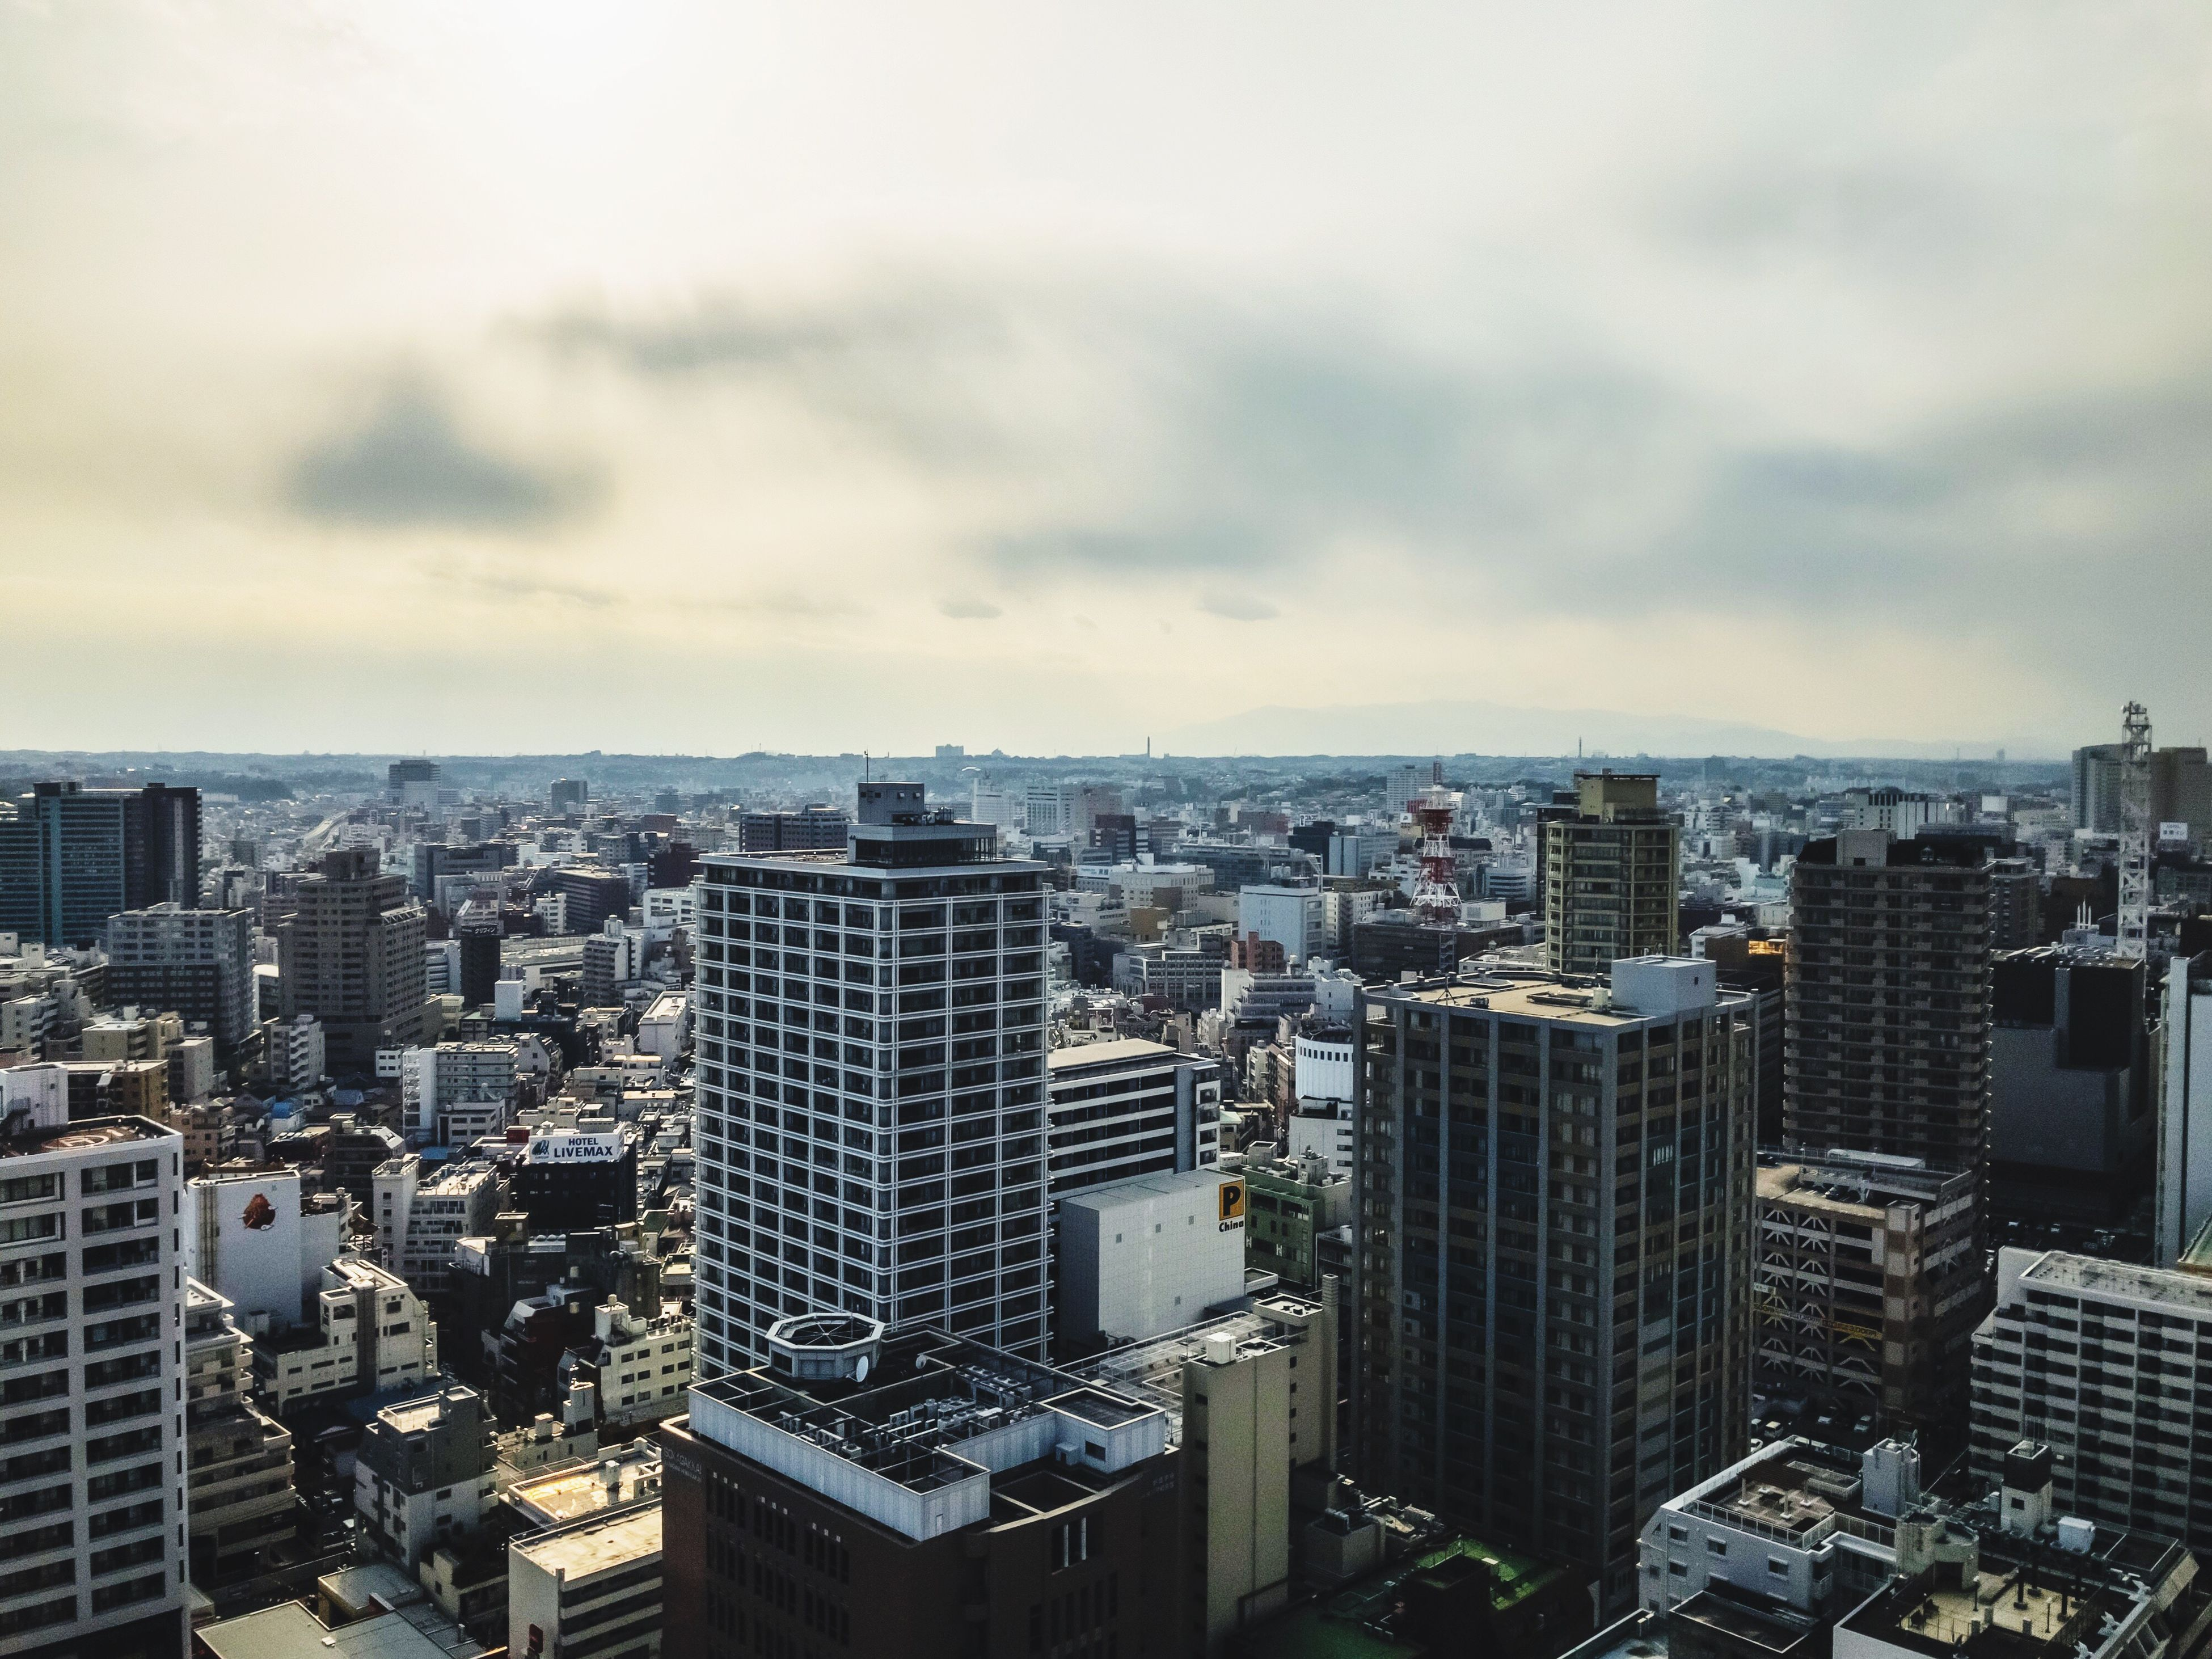 city, cityscape, building exterior, architecture, skyscraper, sky, travel destinations, modern, crowded, outdoors, cloud - sky, aerial view, built structure, urban skyline, downtown district, day, office park